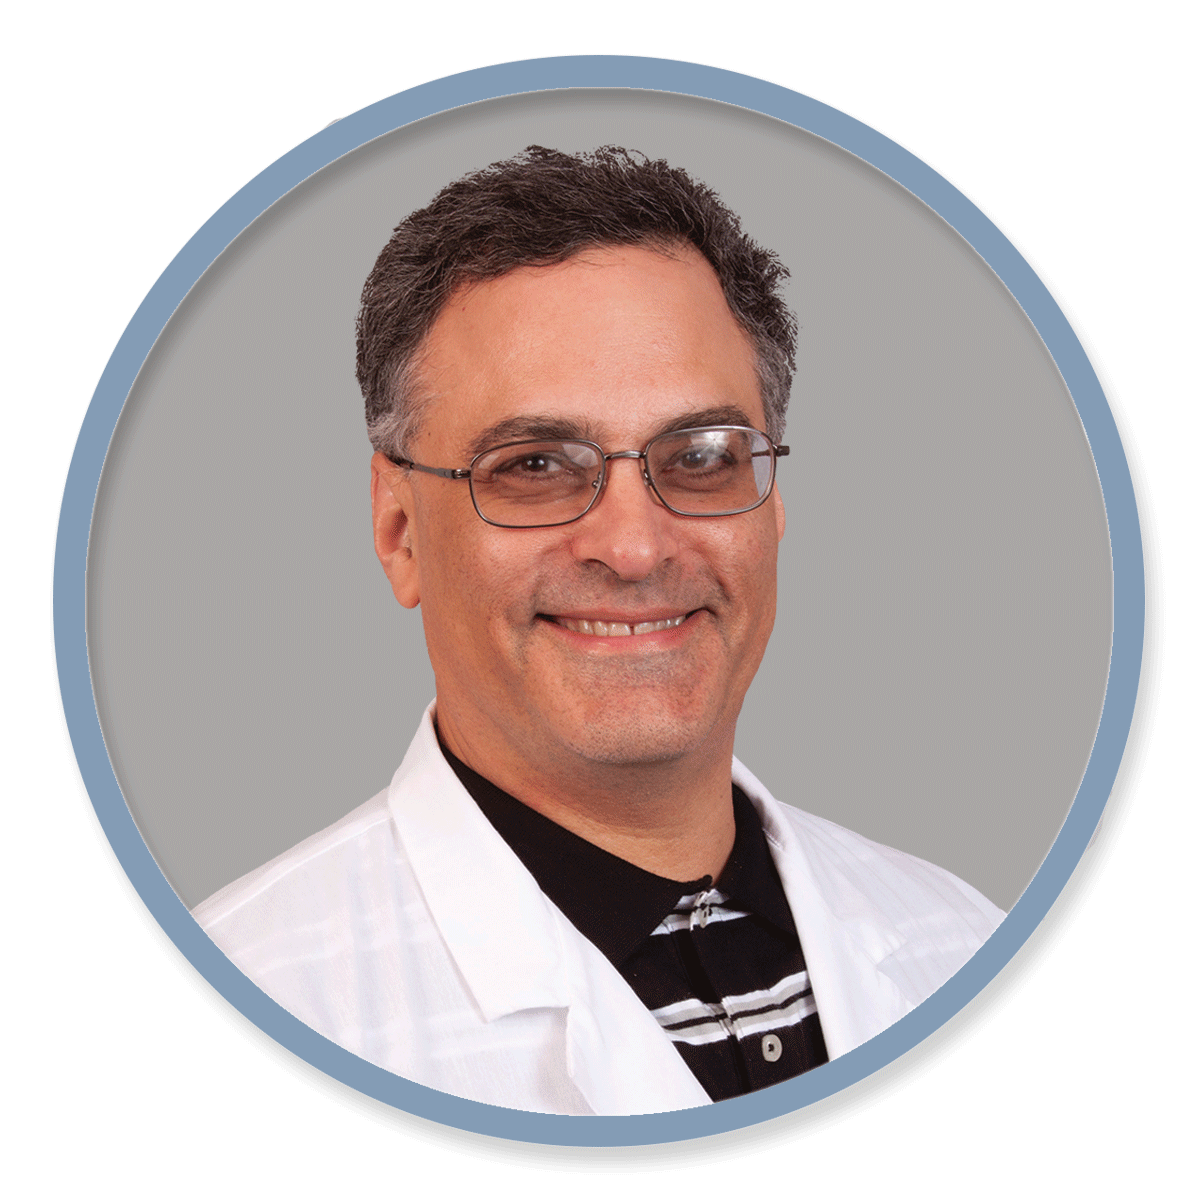 An image of provider Joseph Derosa, DO